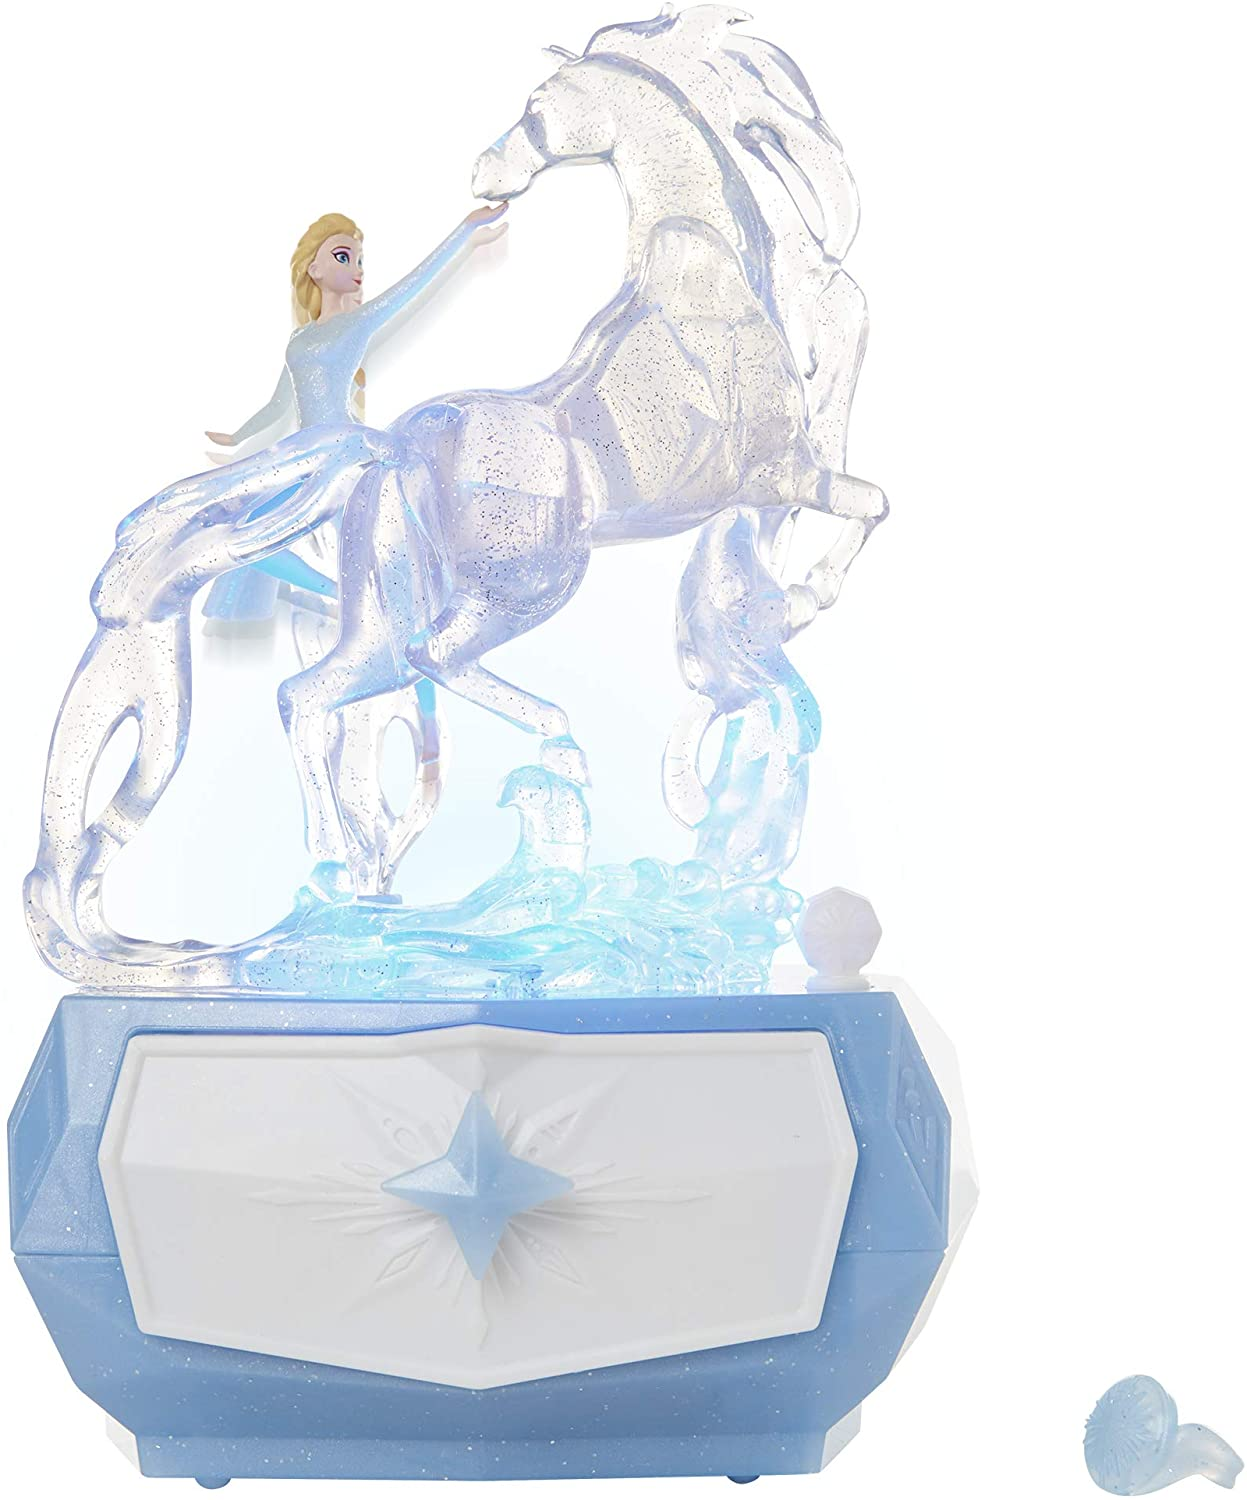 """Disney Frozen 2 Elsa & Water Nokk Jewelry Box with Snowflake Ring, Color Changing Light, Plays """"Into The Unknown"""""""